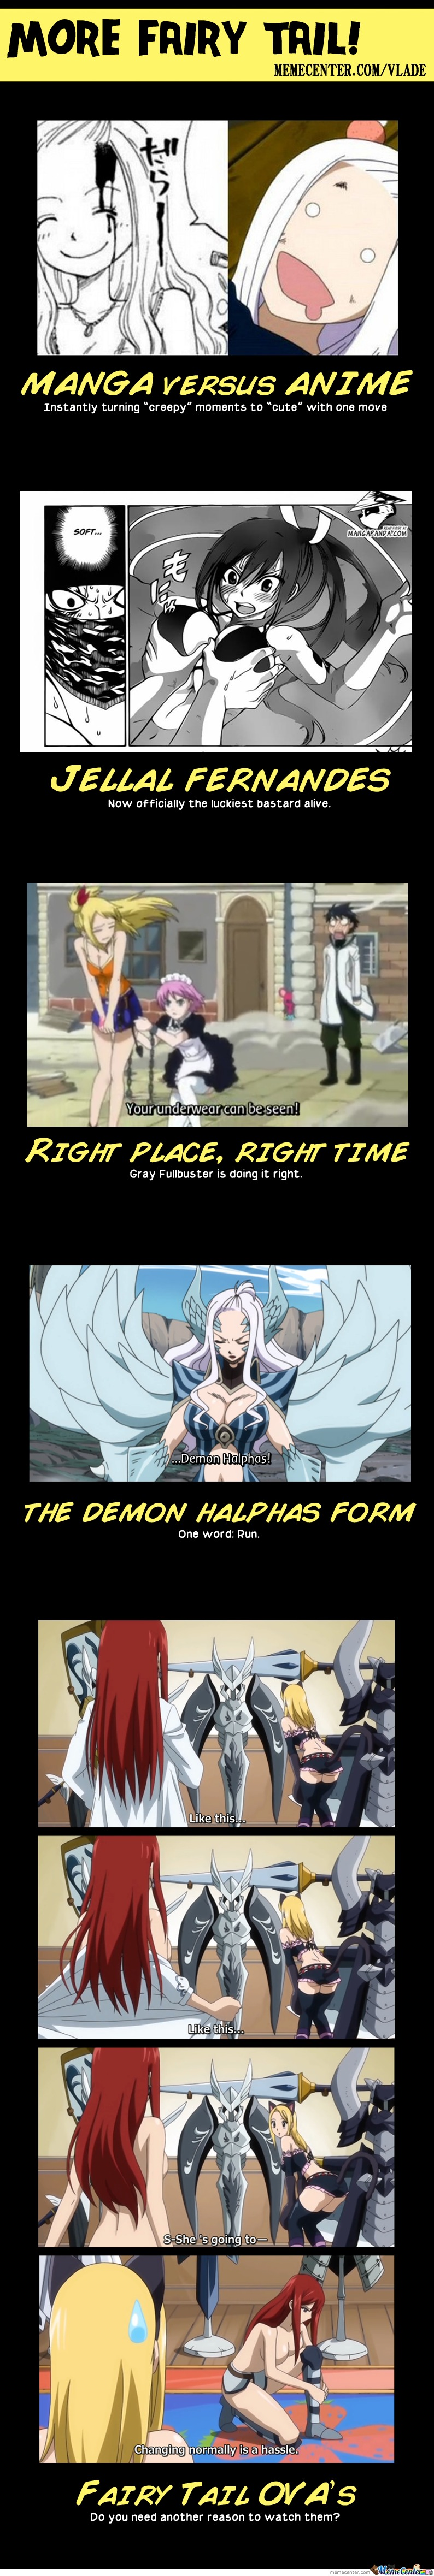 More Fairy Tail!